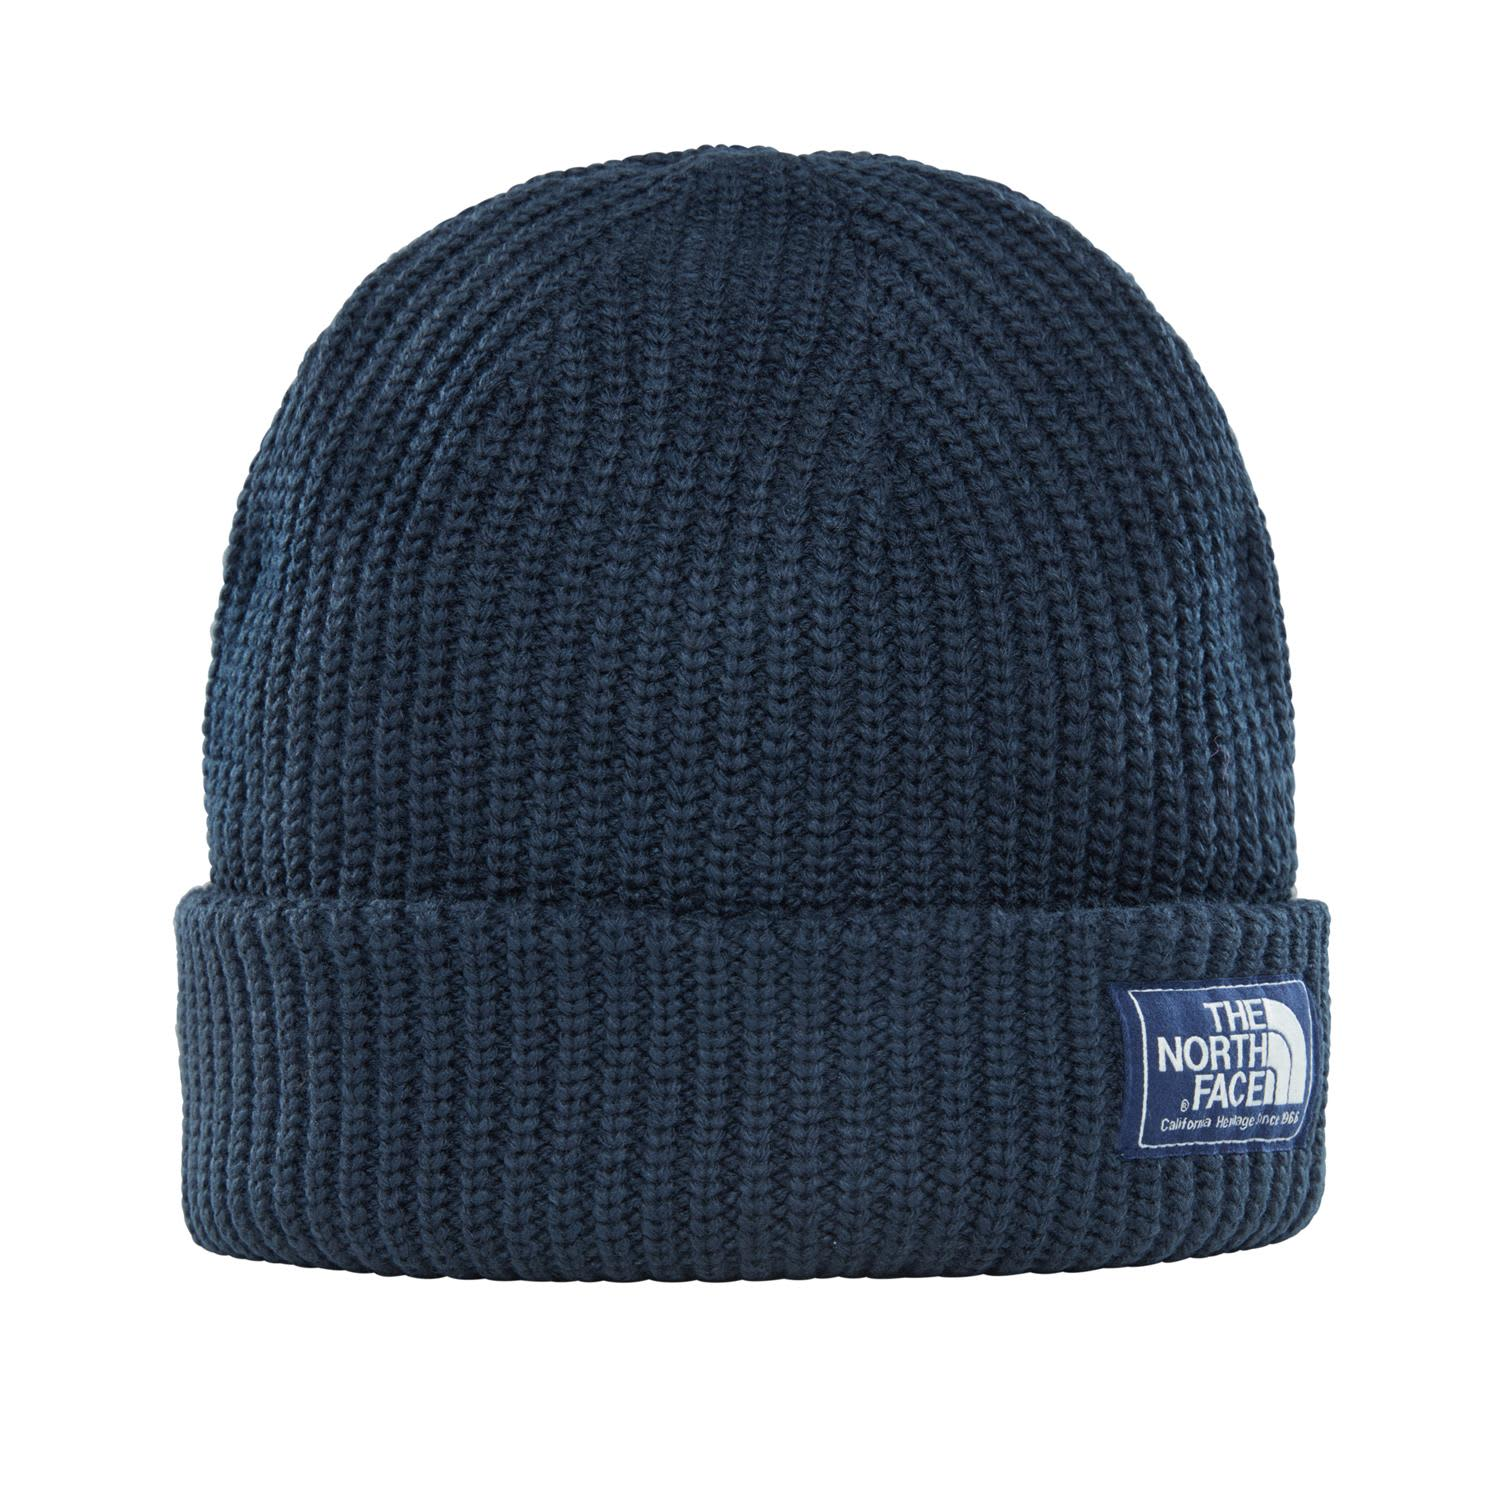 eb32a367b The North Face Men's Salty Dog Beanie